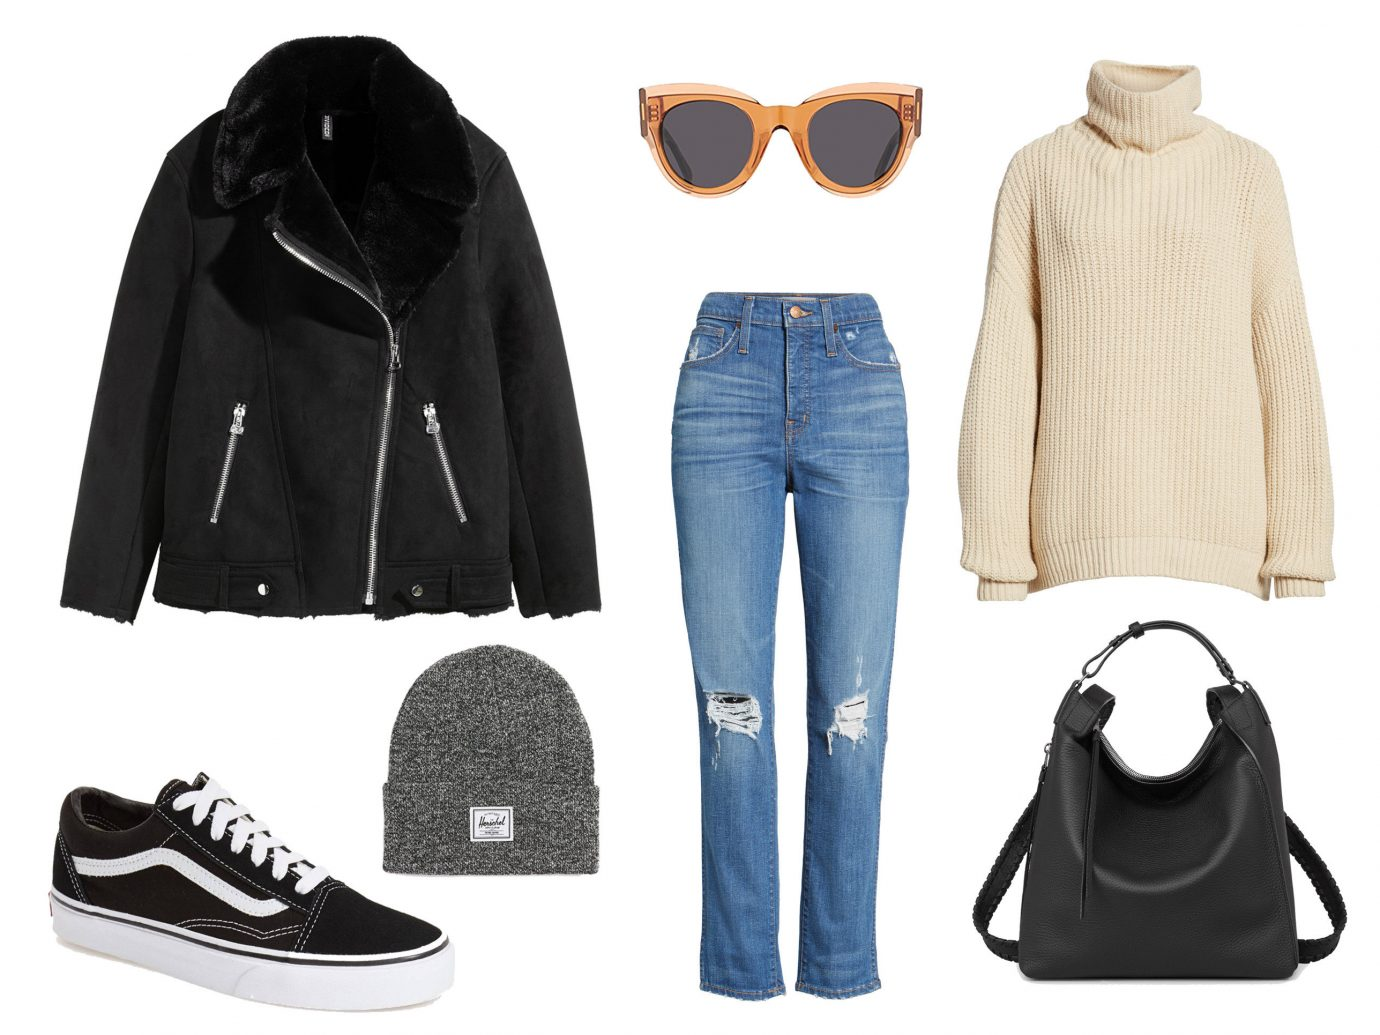 City Trip Ideas Weekend Getaways clothing fashion shoe outerwear jacket product hood coat fur brand fashion design